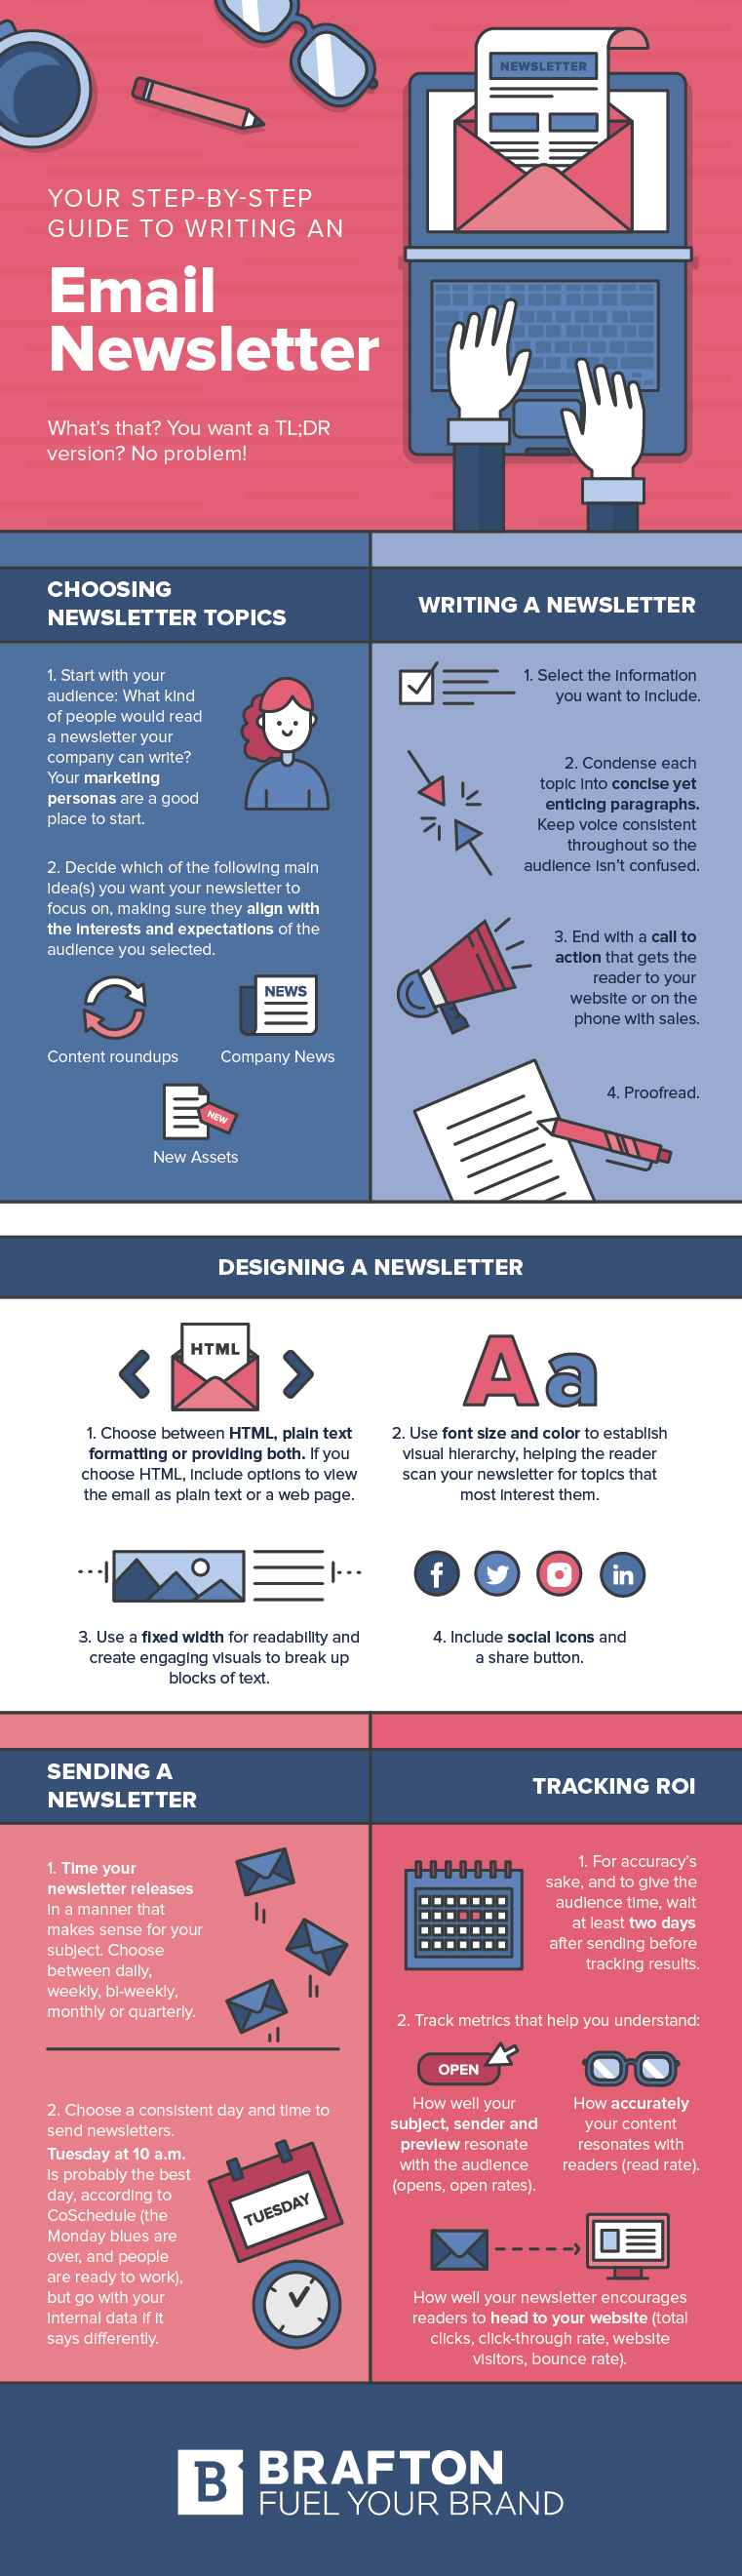 How to write a newsletter Brafton email newsletter